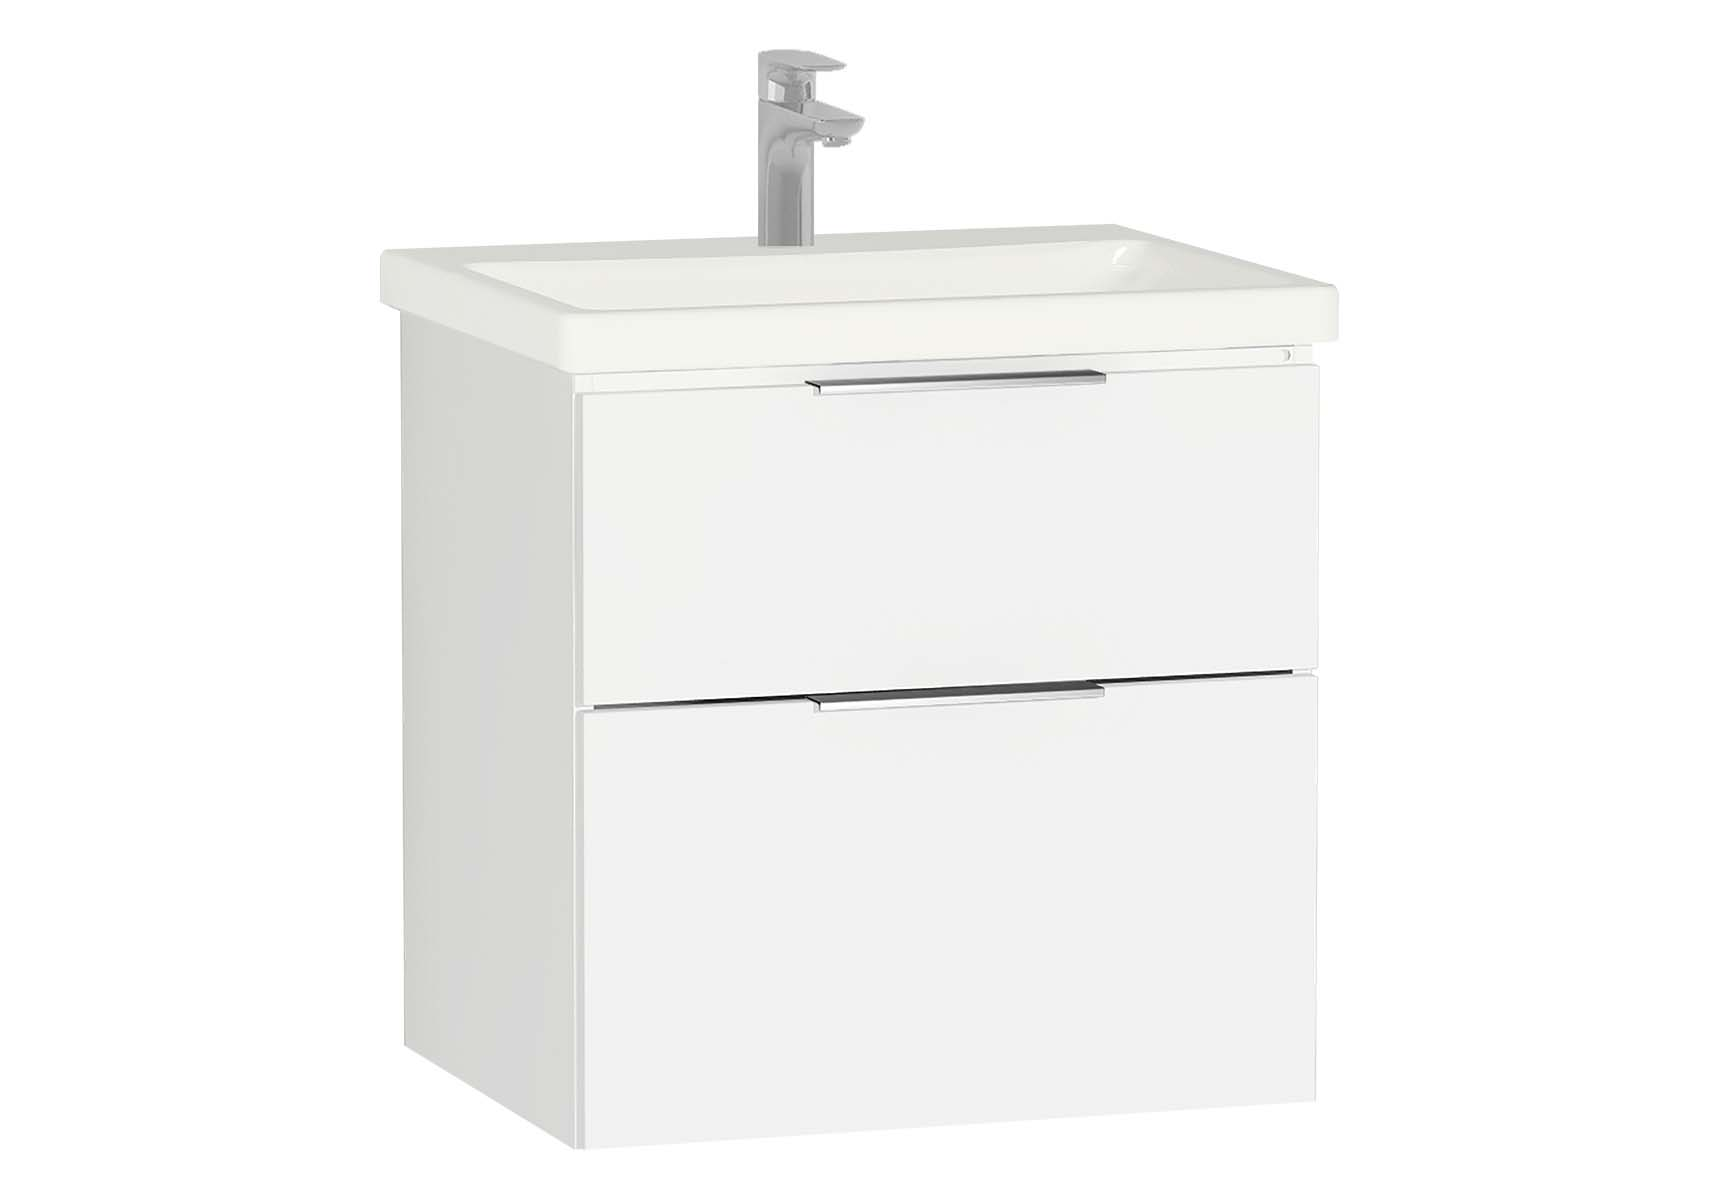 Central Washbasin Unit with 2 drawers, 60 cm, White High Gloss, Ceramic Washbasin